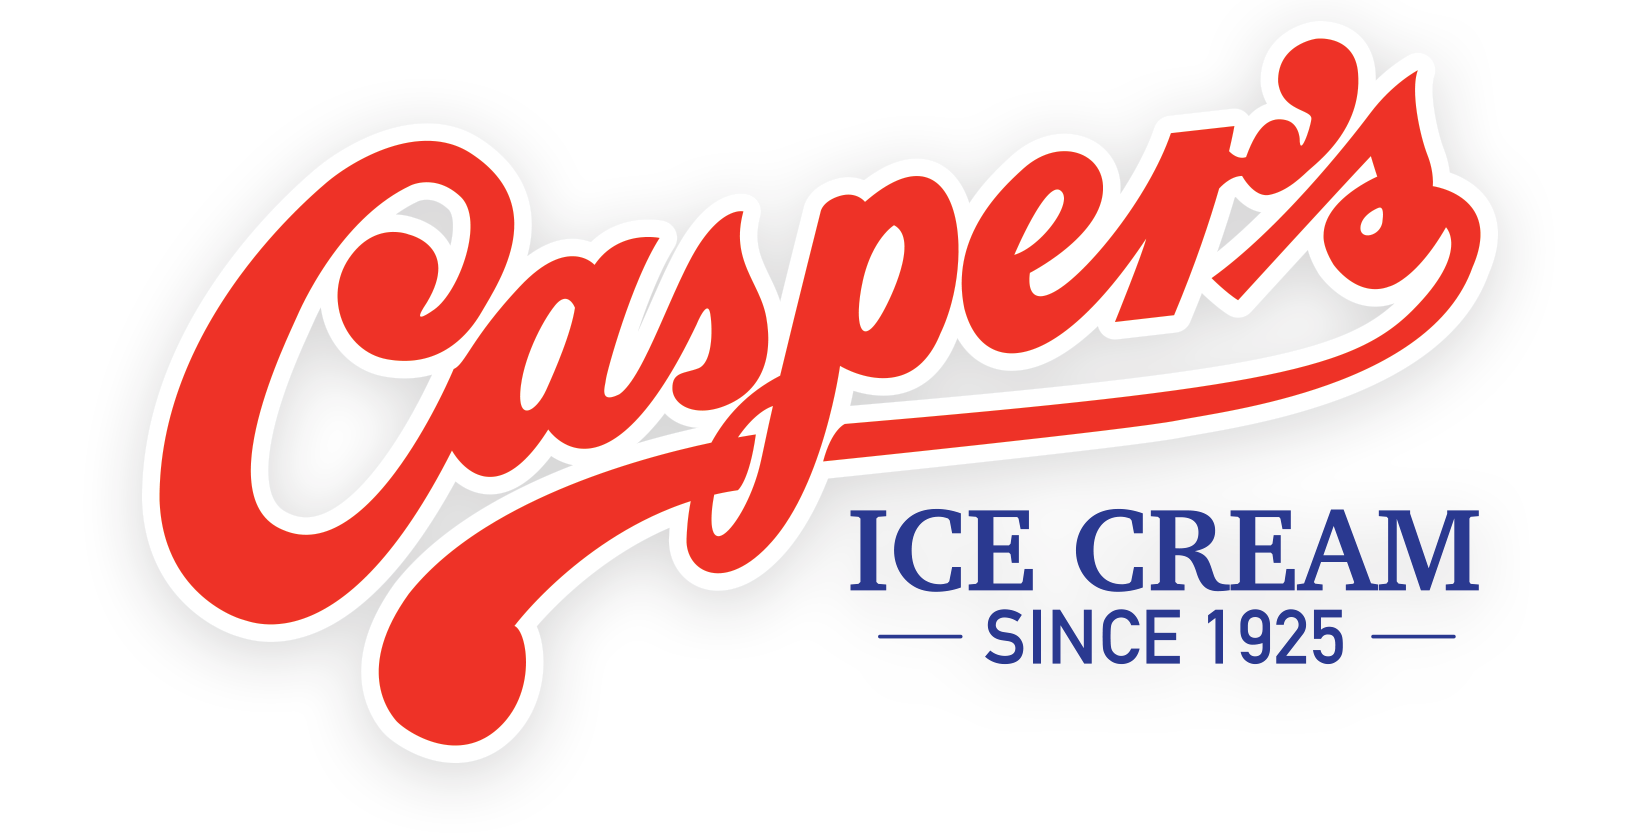 Casper's Ice Cream